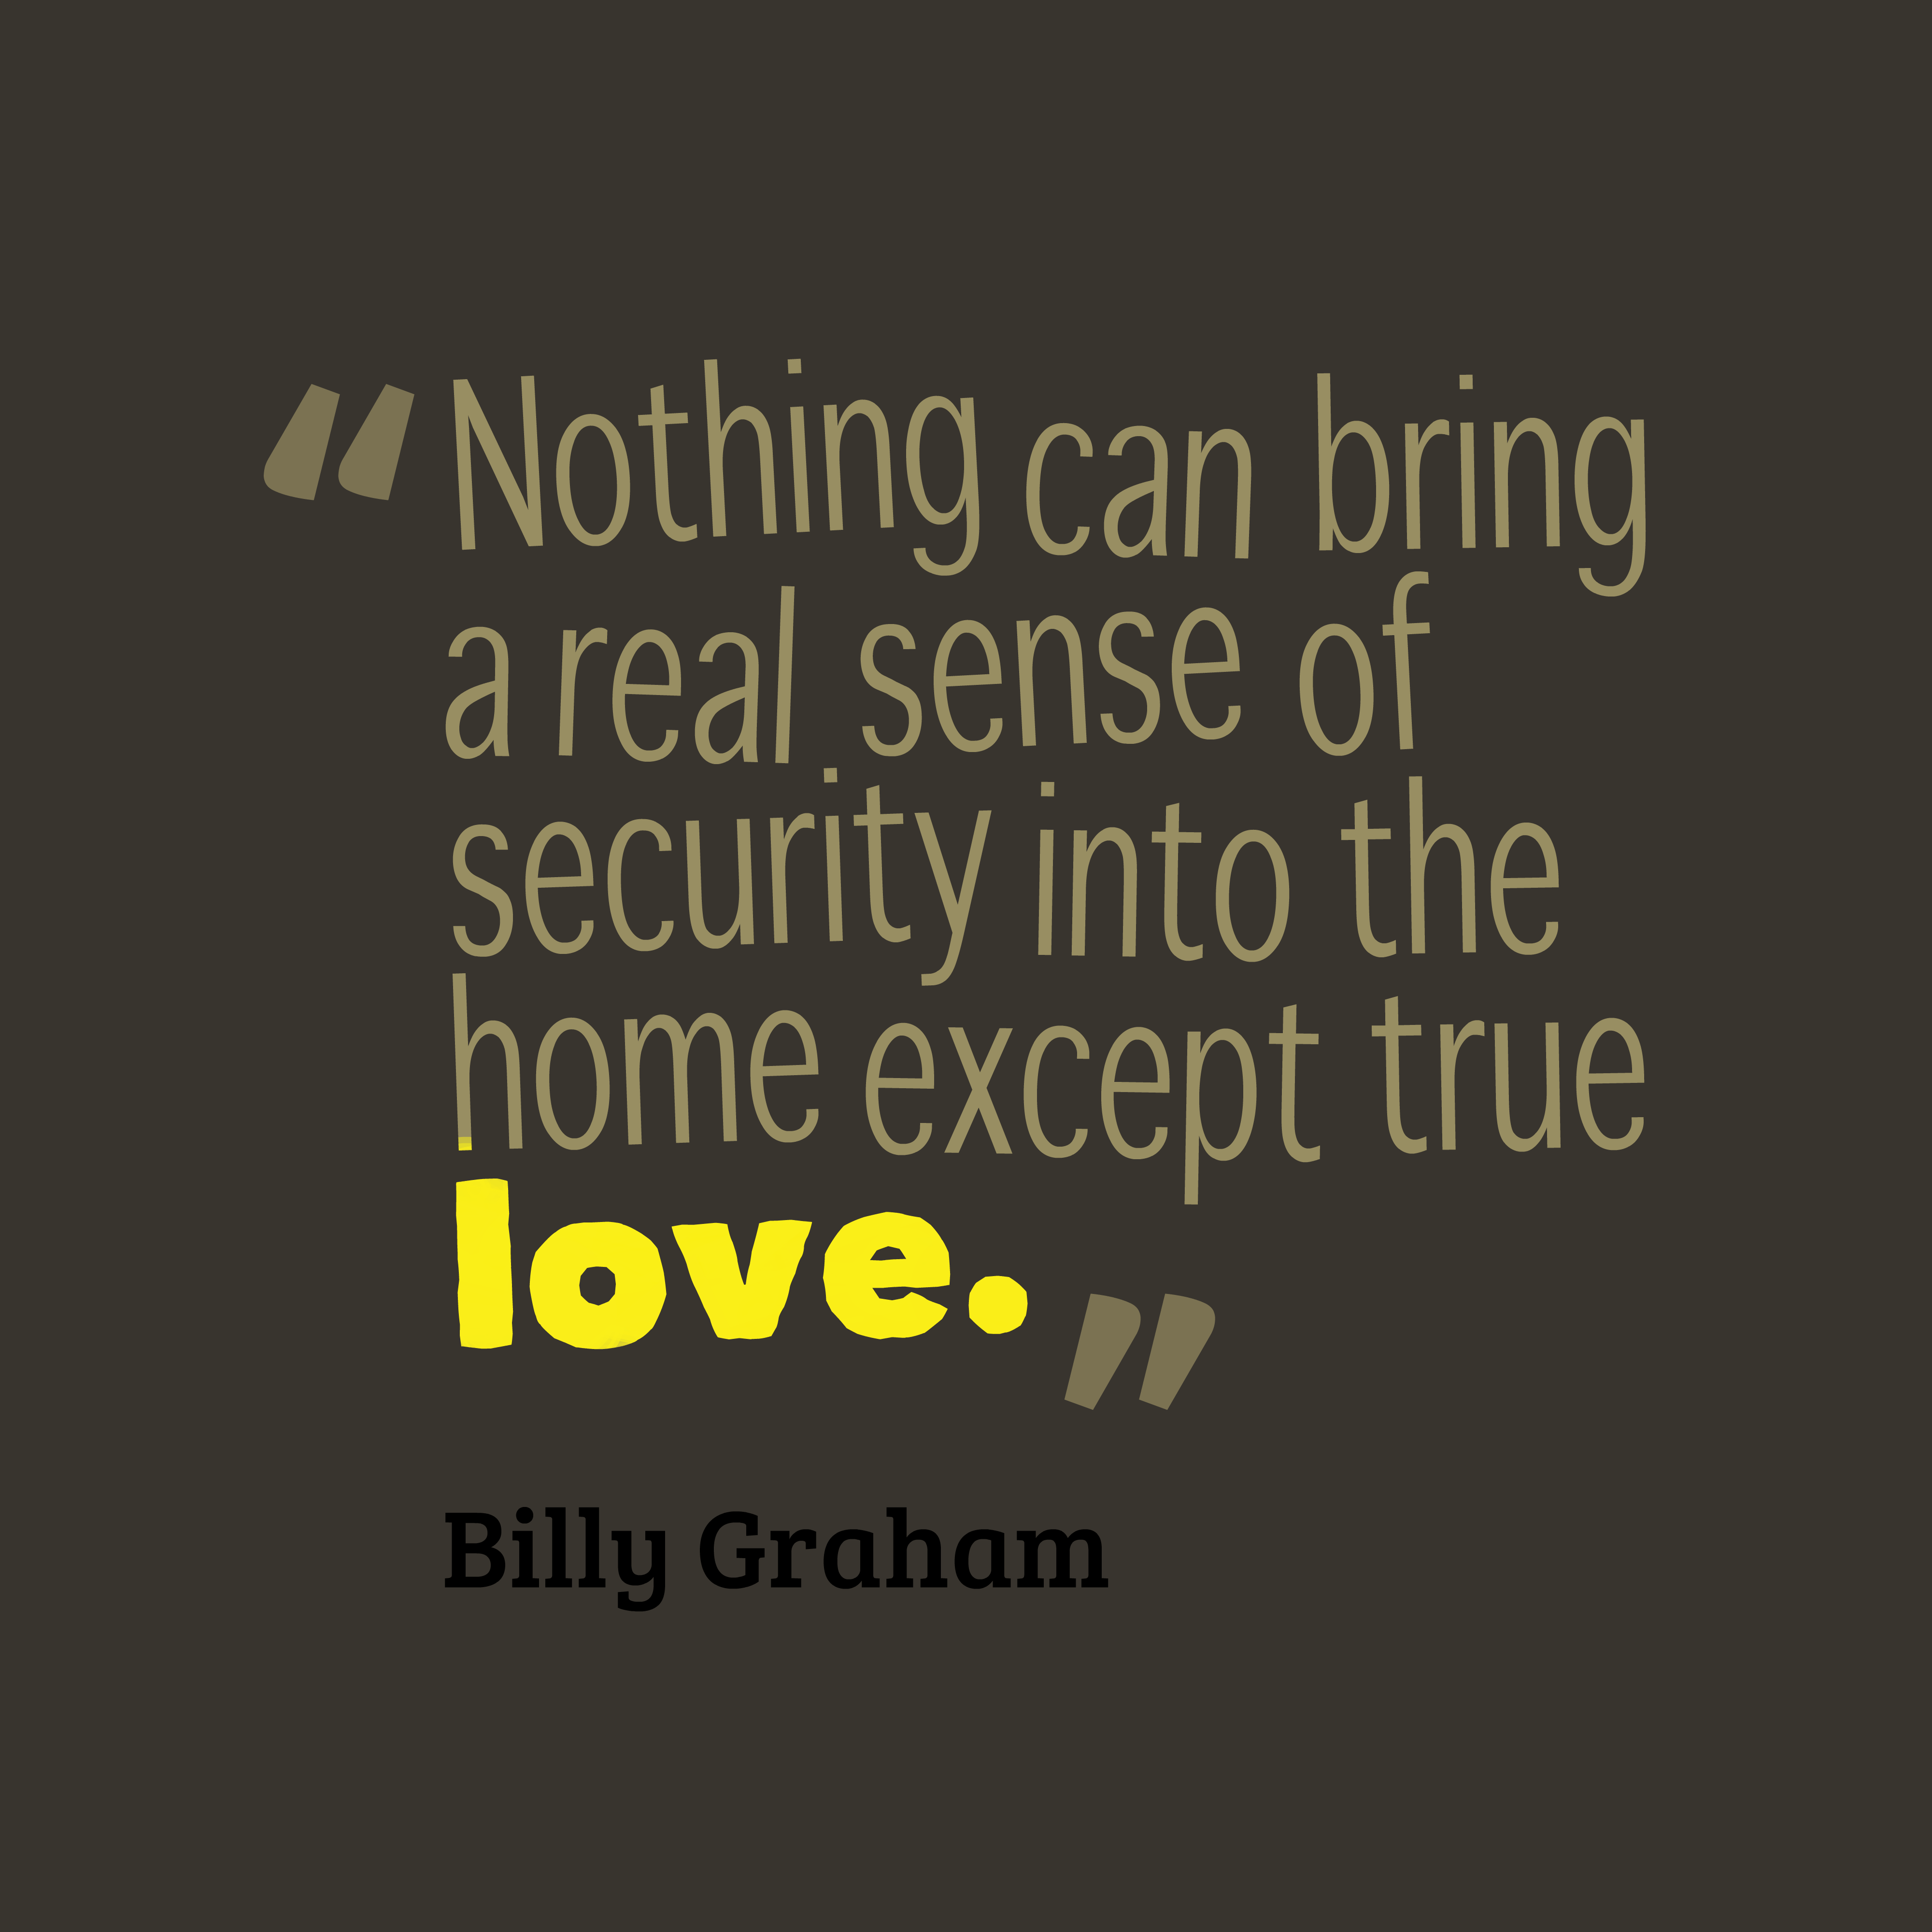 Security Quotes 27 Best Billy Graham Quotes Images